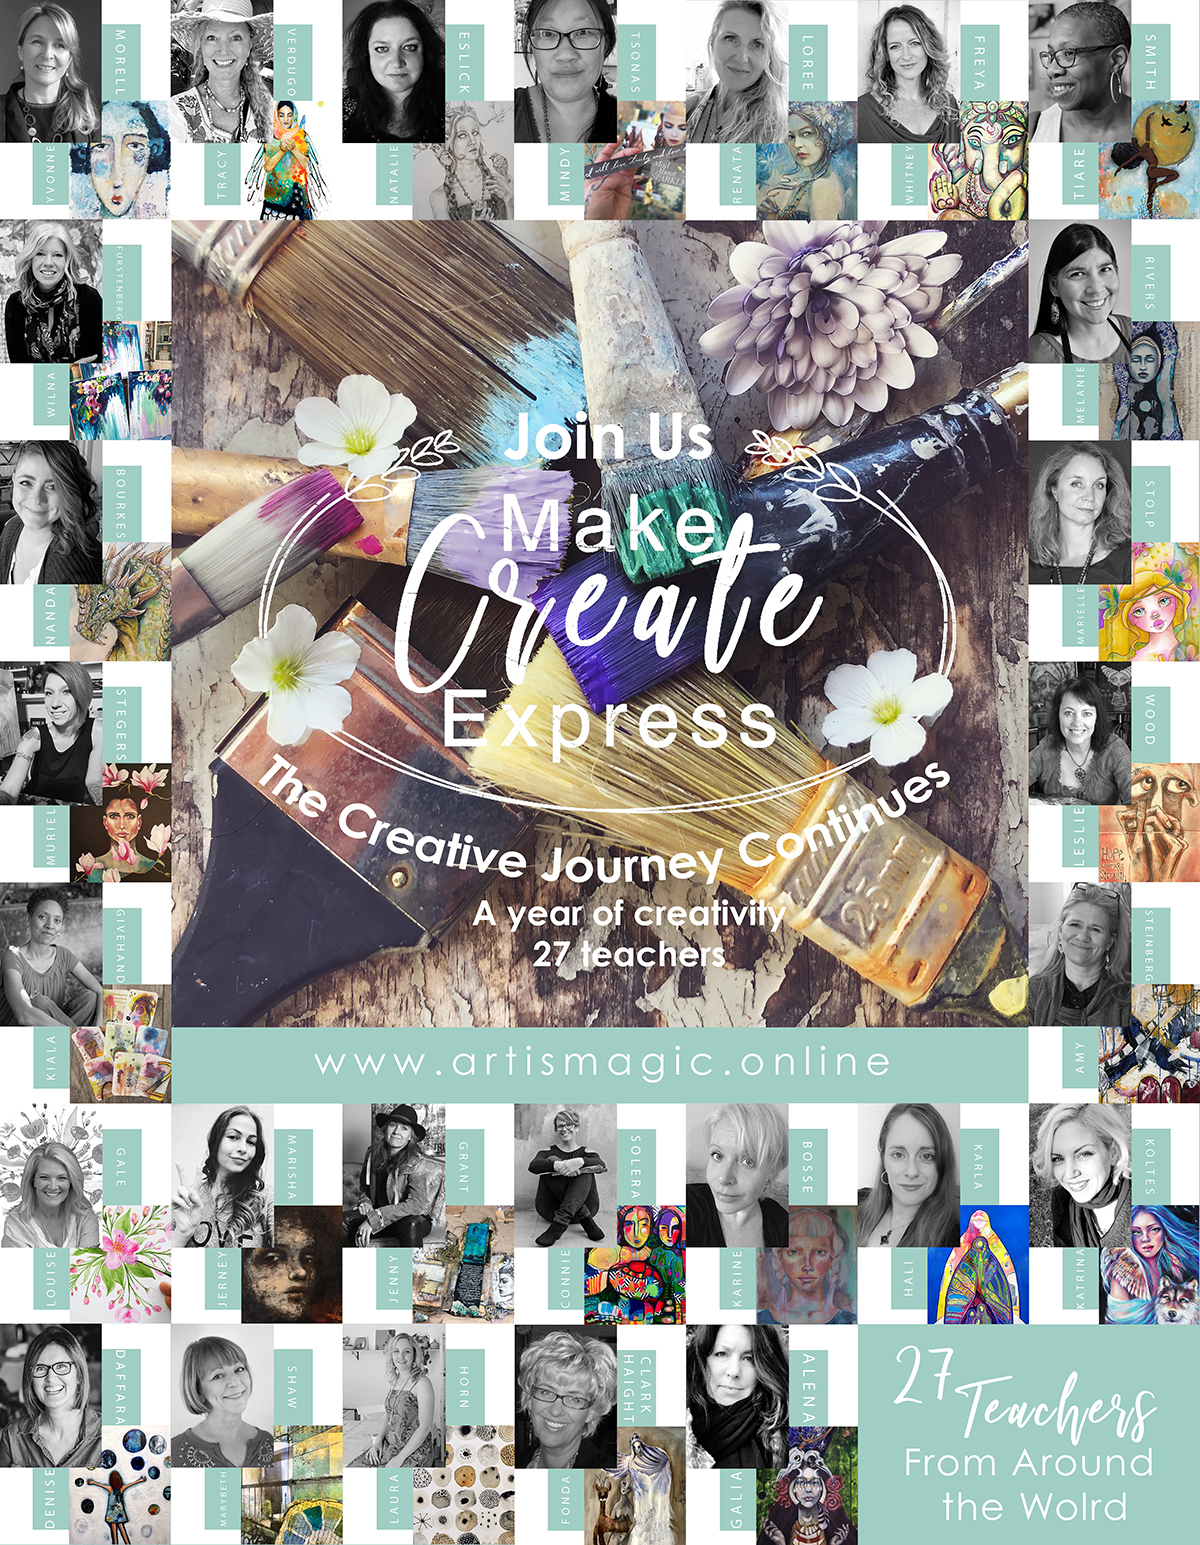 Make create Express mixed-media online creative journey kicks off with 27 FREE lessons - come sign up